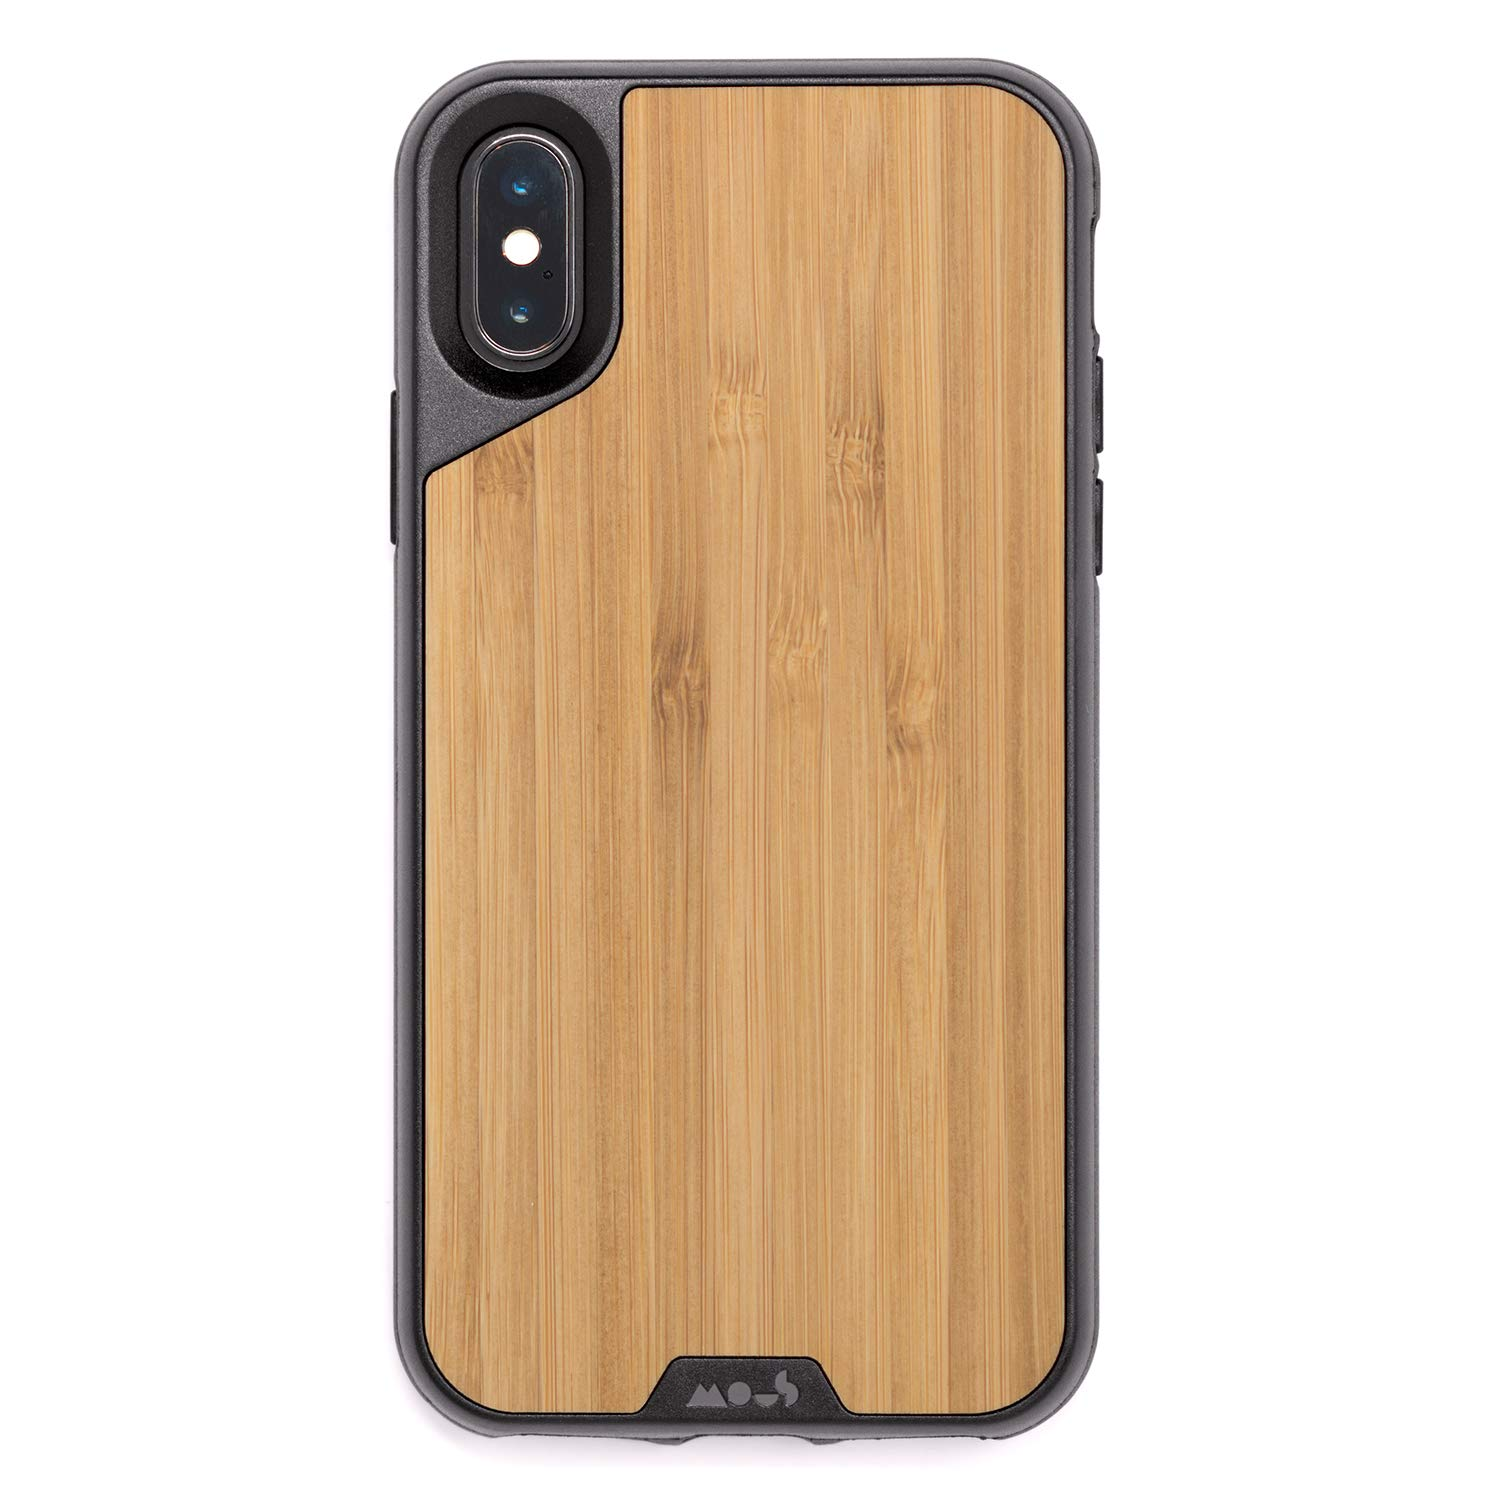 new products 6c2eb 064f3 Mous Protective iPhone X/XS Case - Real Bamboo Wood - Screen Protector Inc.